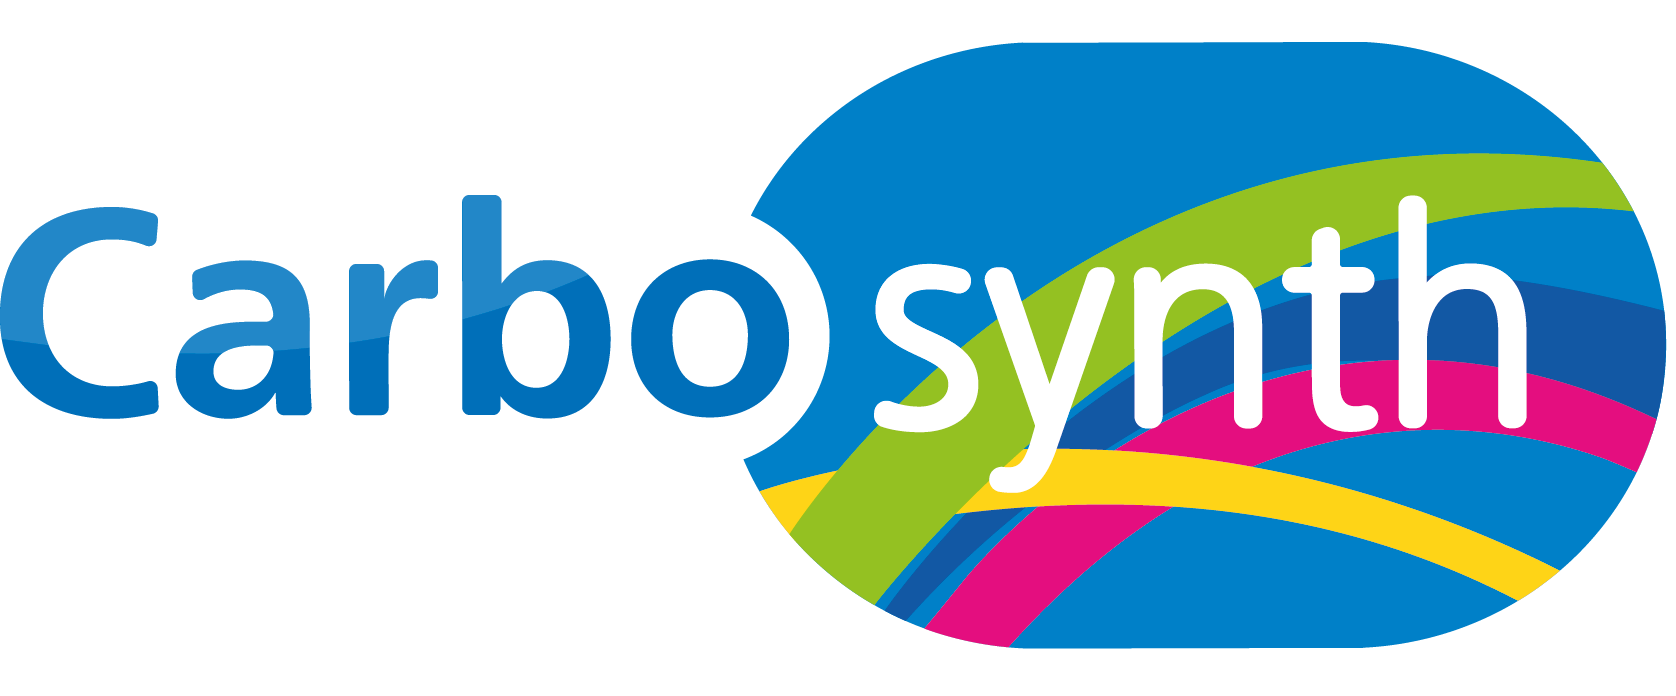 Carbosynth logo